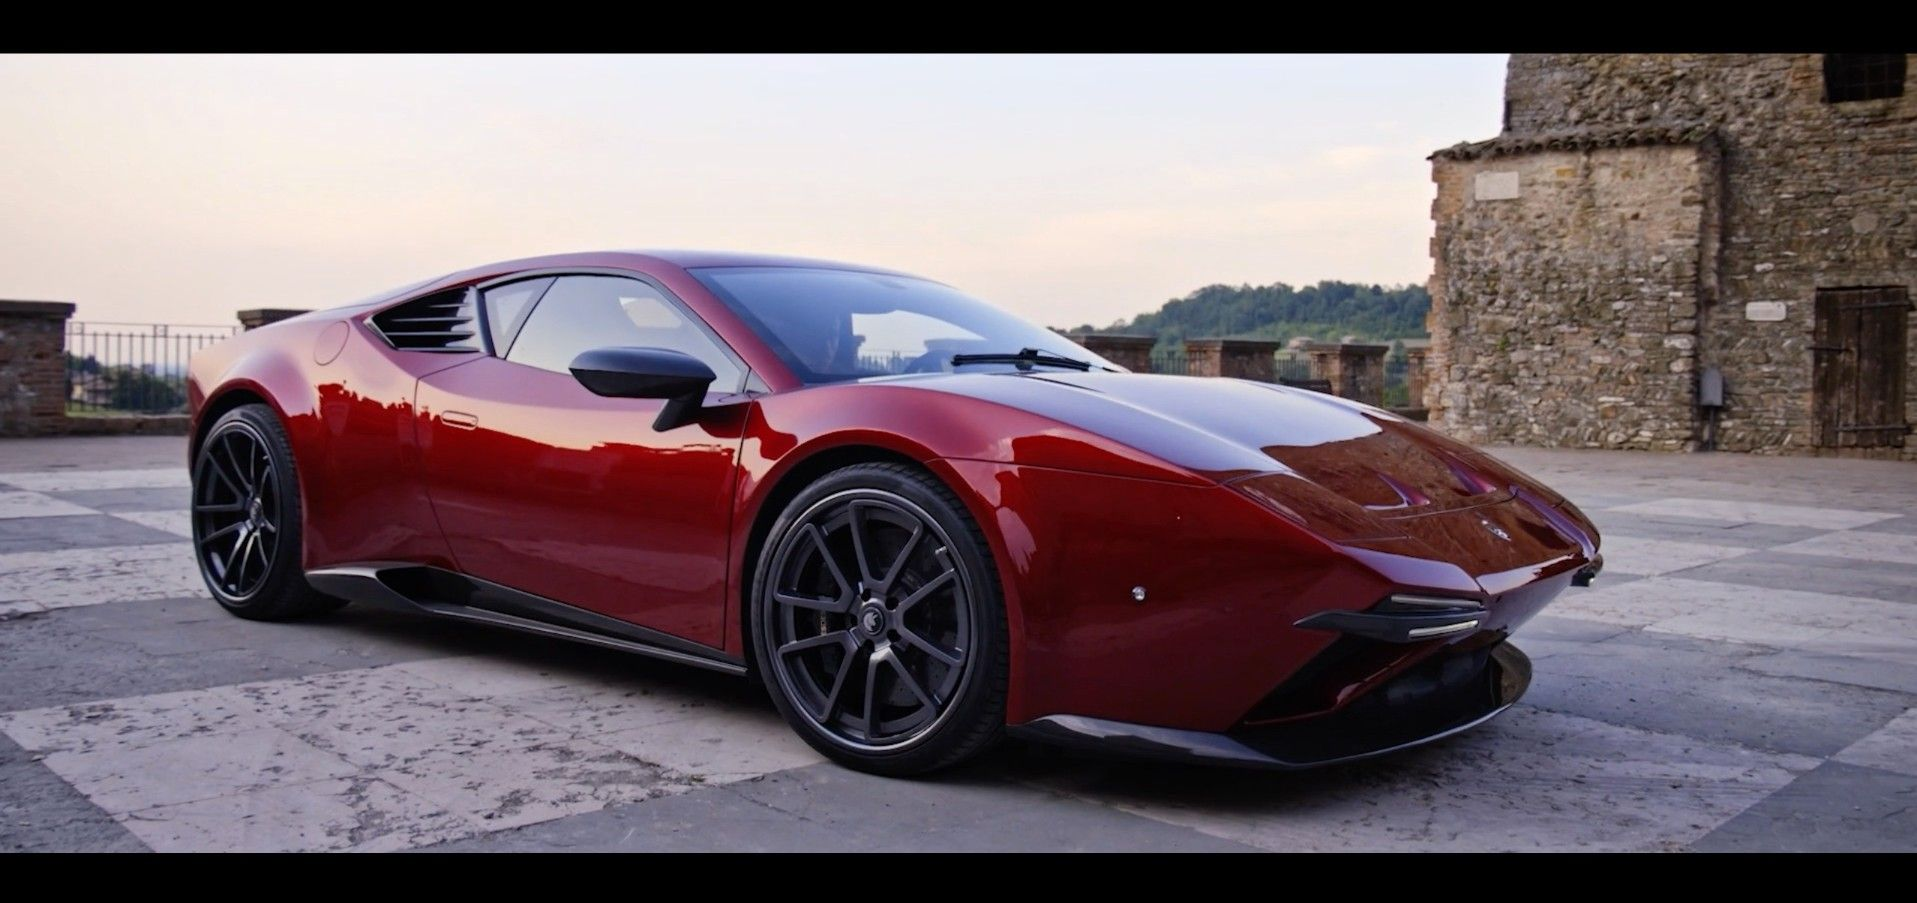 Check Out Ares Design S Latest Supercar The Panther Progettouno In 2020 Super Cars Cars For Sale Car